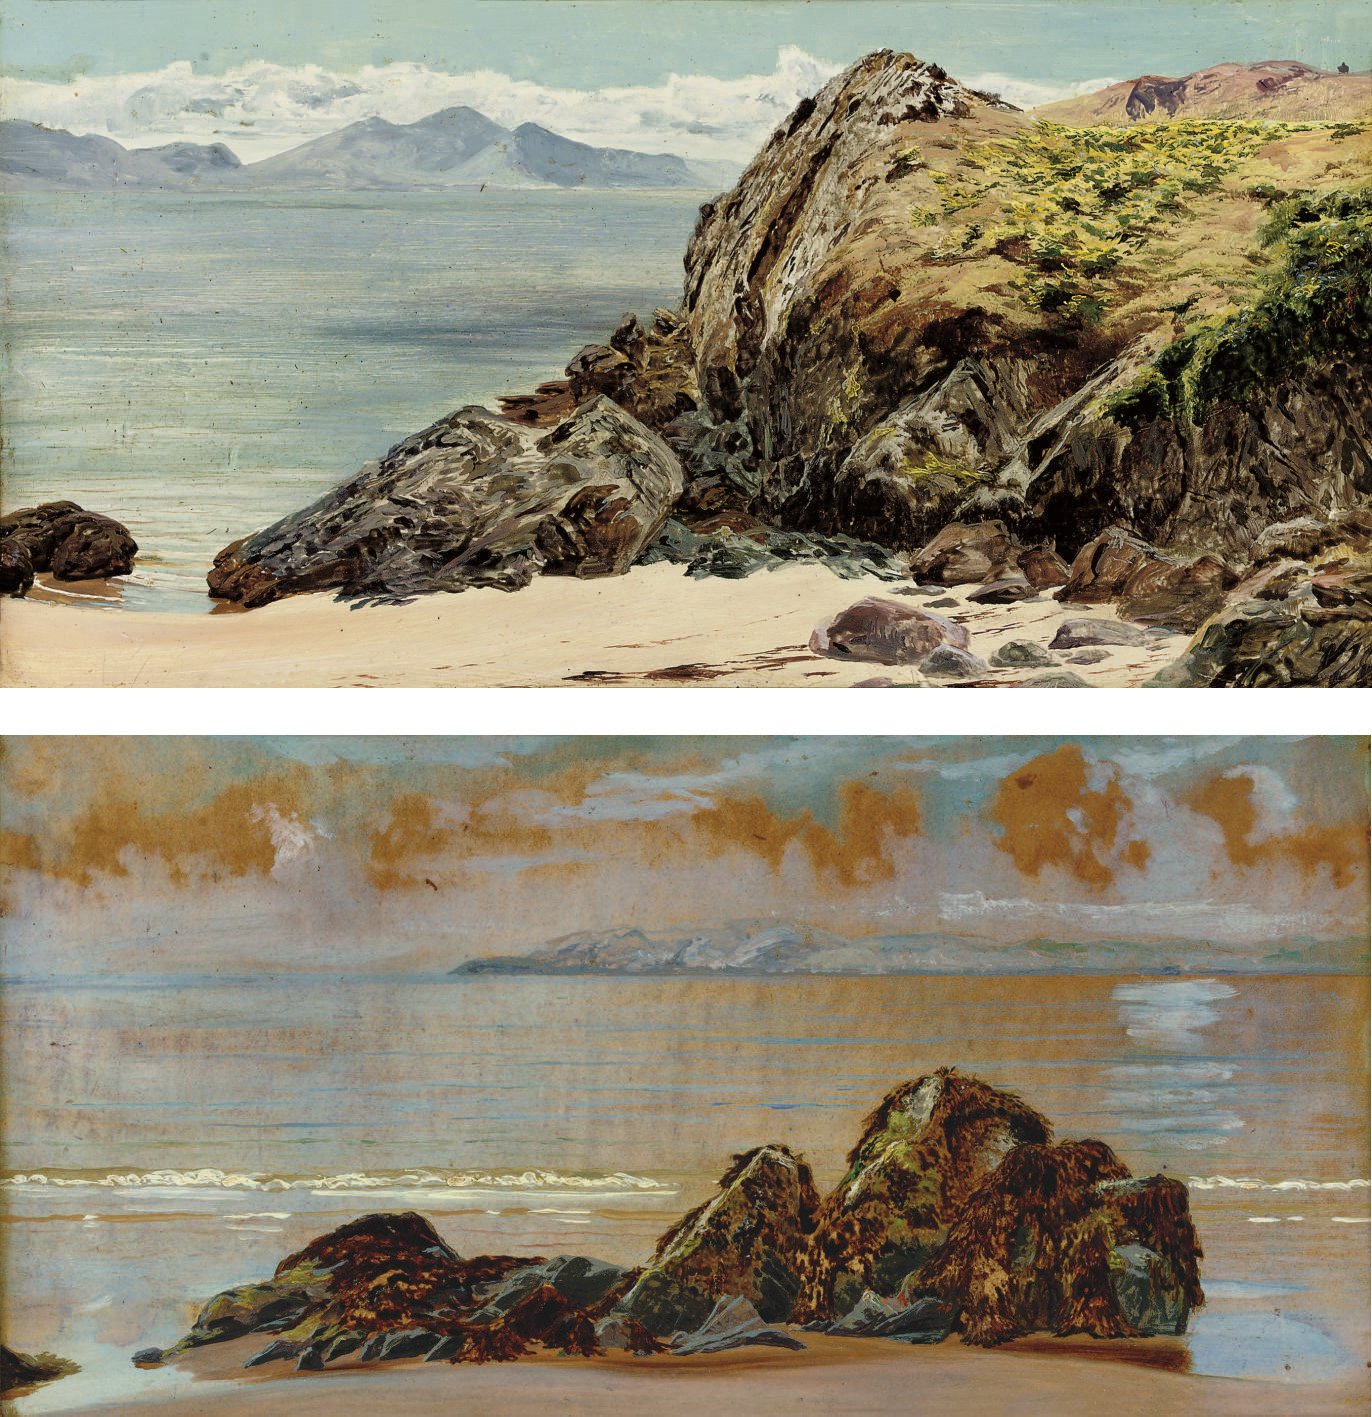 The rivals, Llanddwyn; and Rocks on a beach